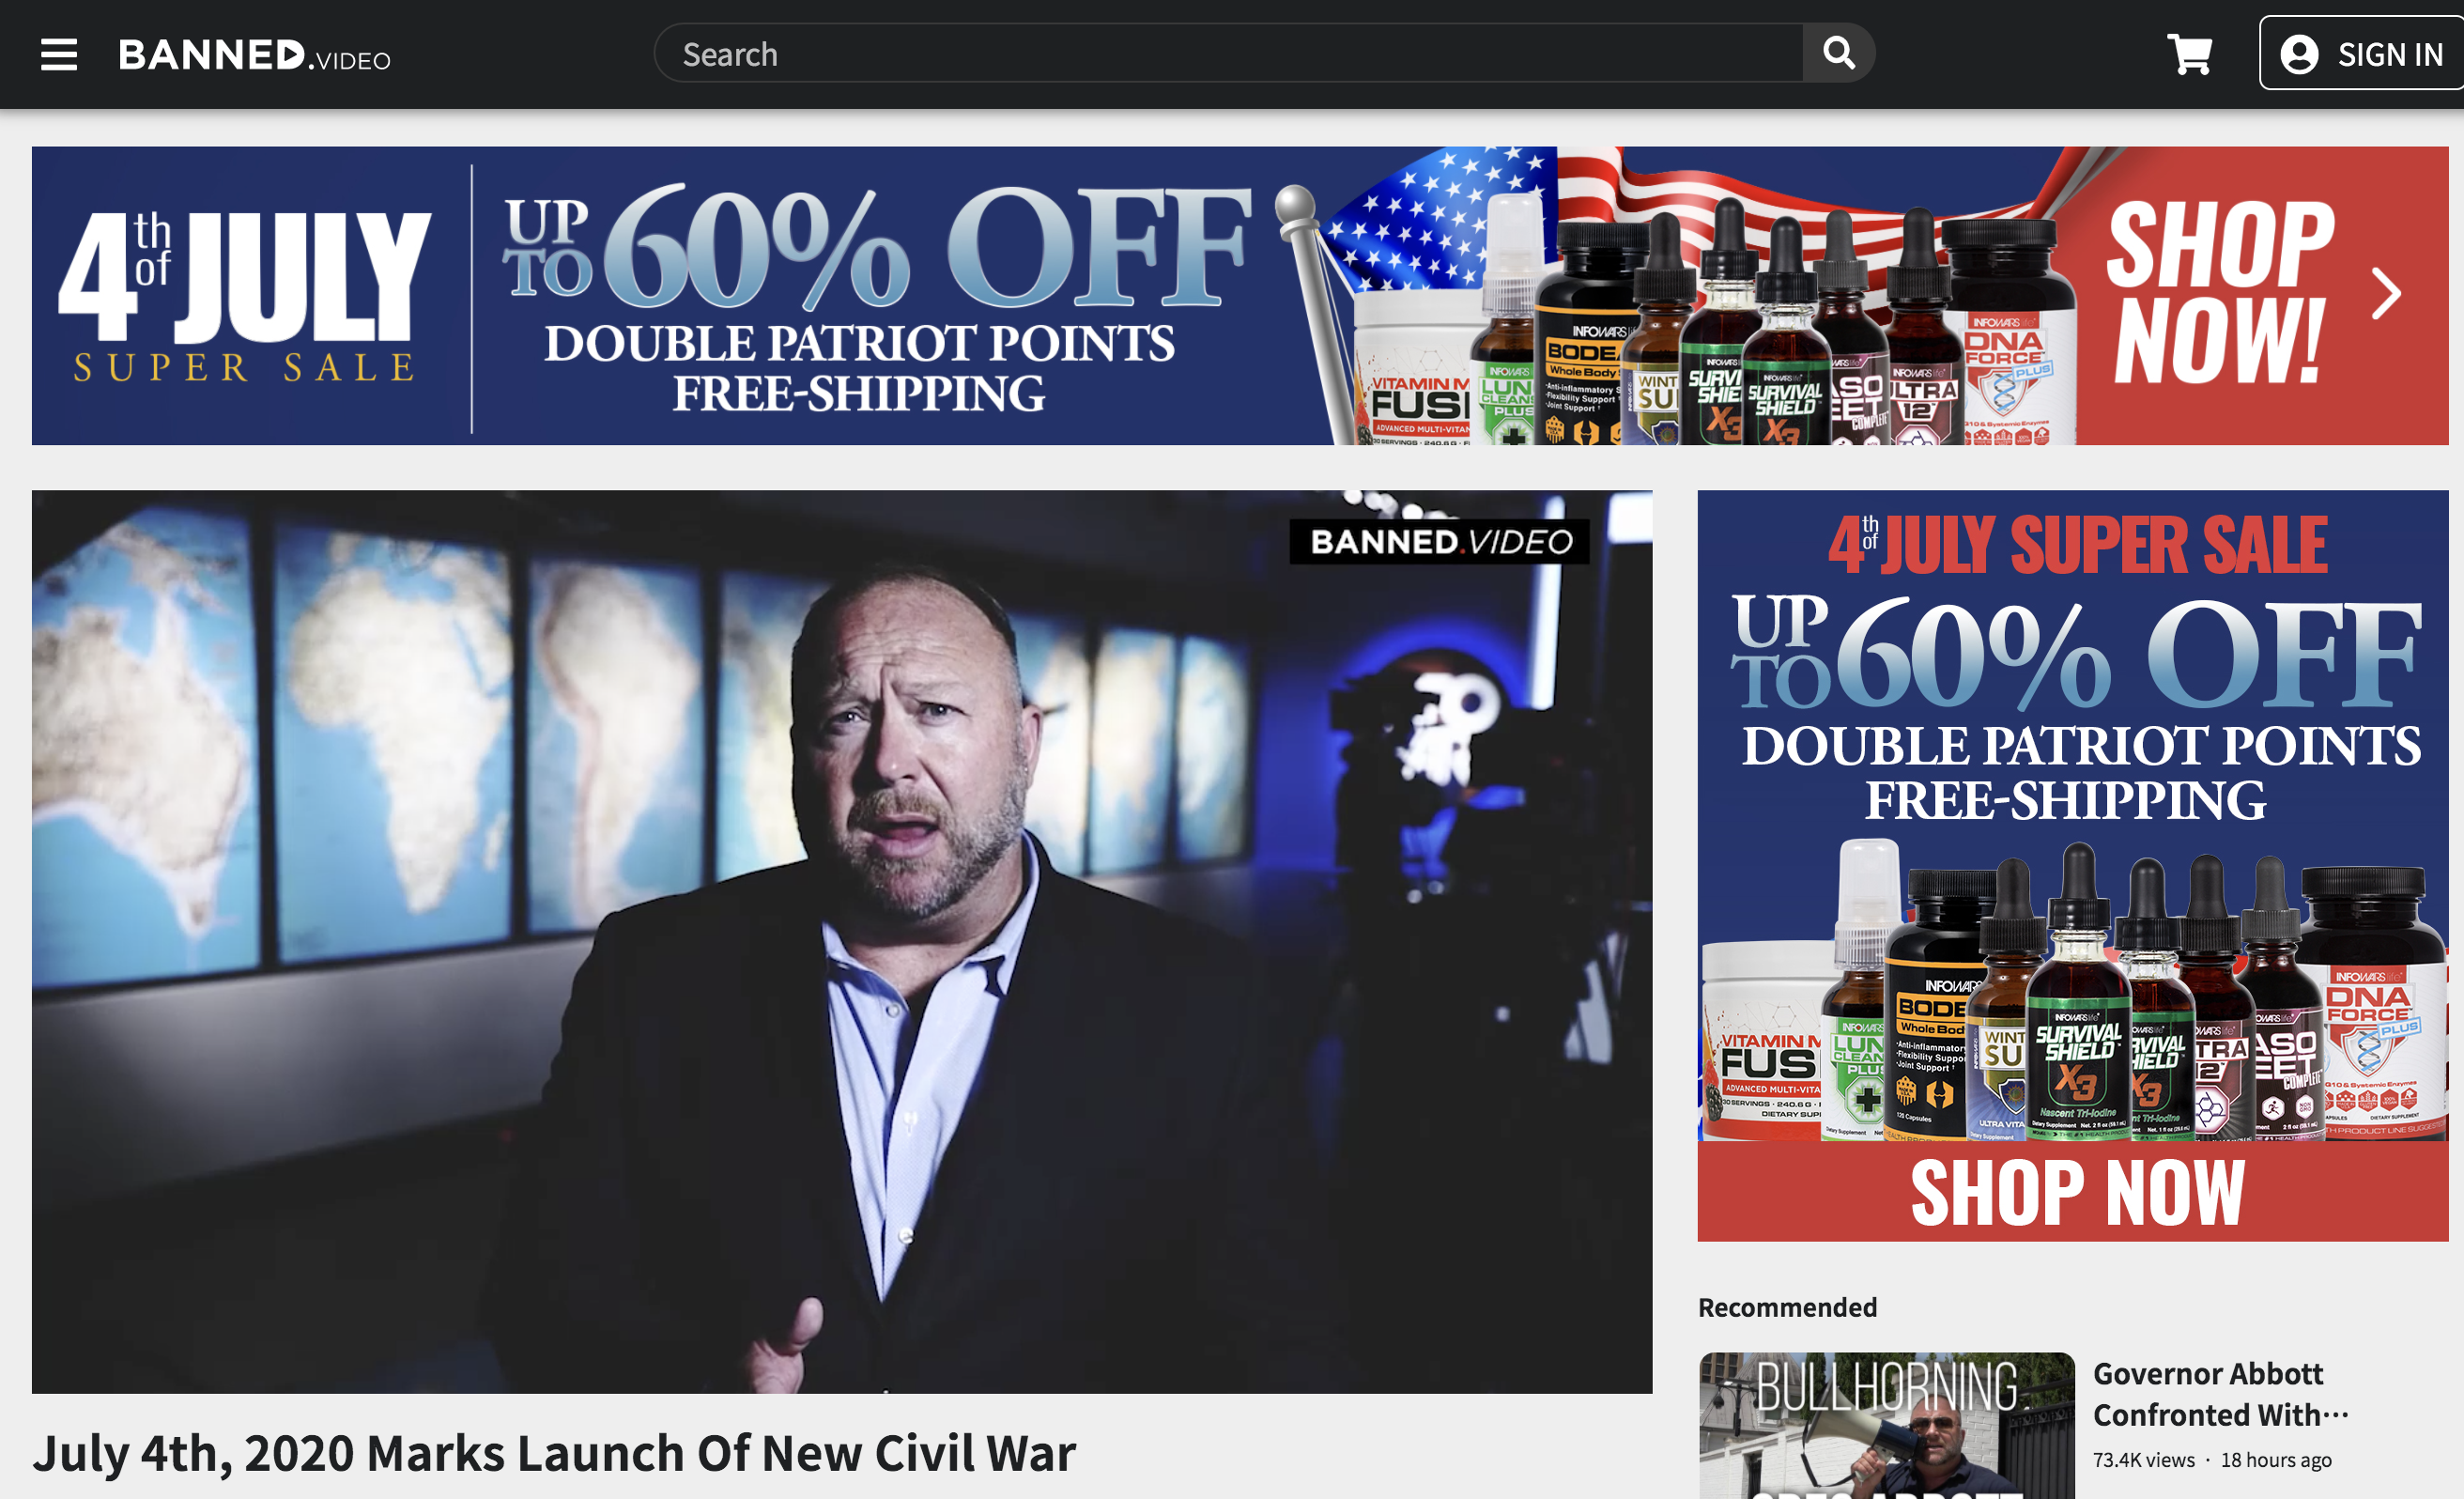 Alex Jones Banned Video Infowars 4th of July 2020